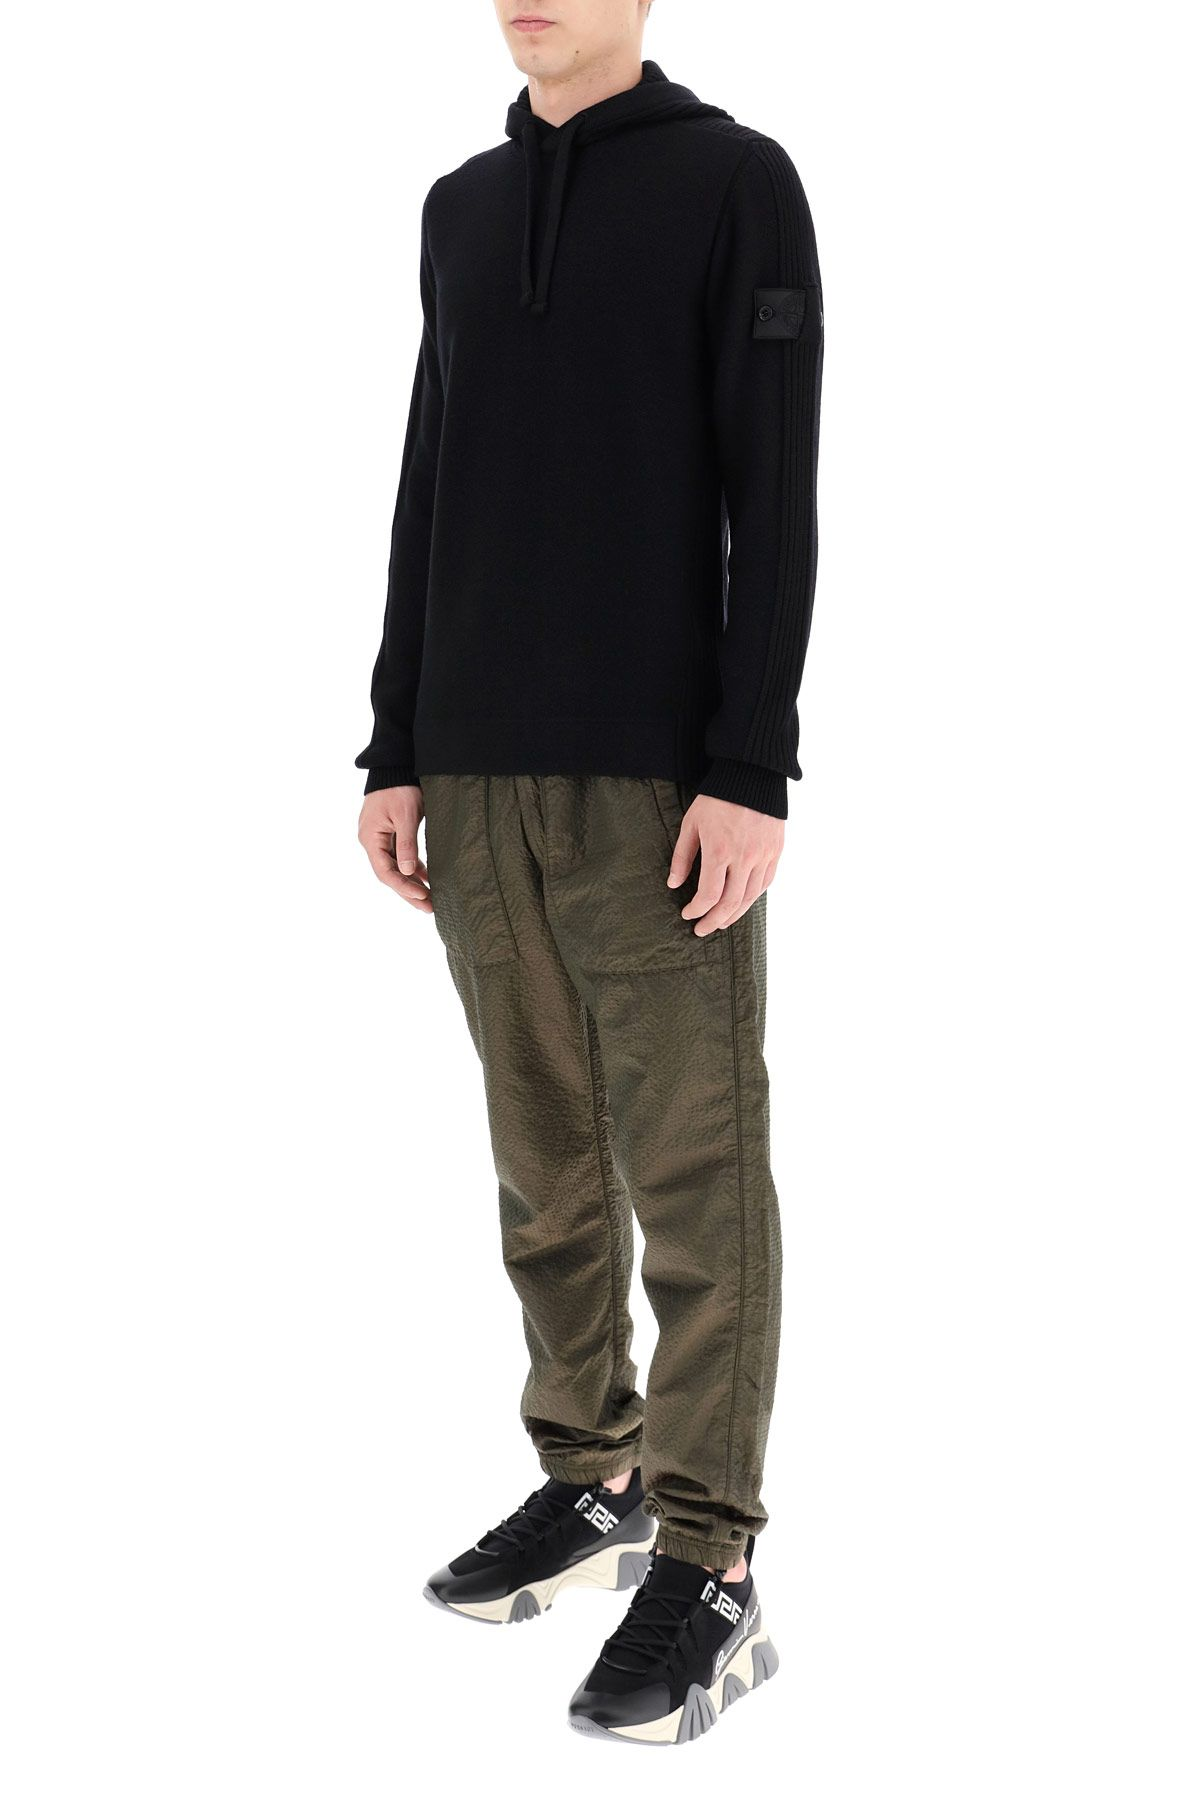 stone island shadow project clothing men hooded sweater